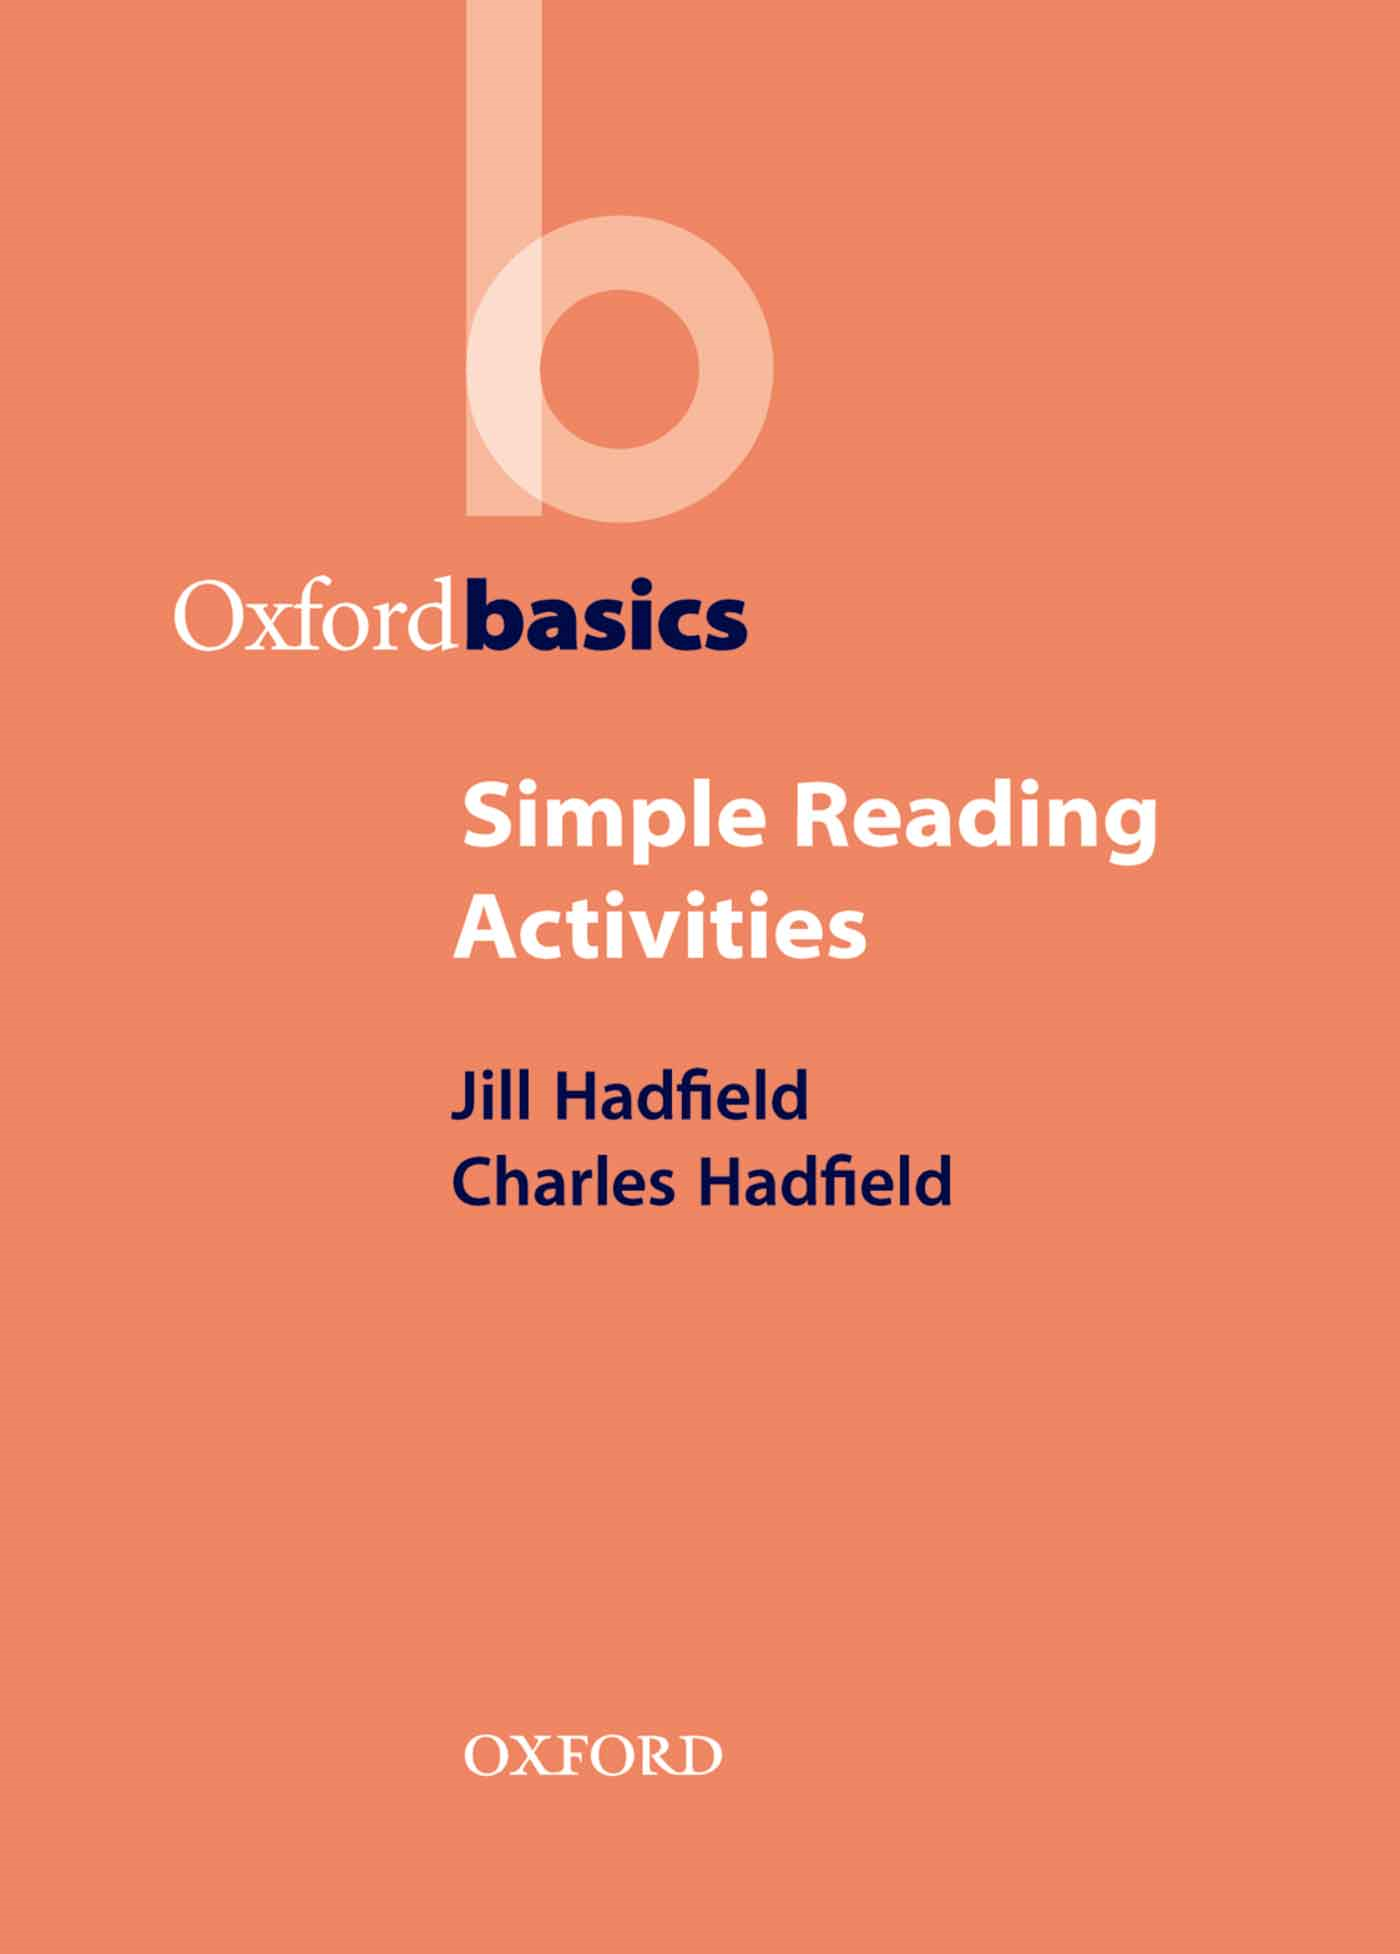 OB: SIMPLE READING ACTIVITIES